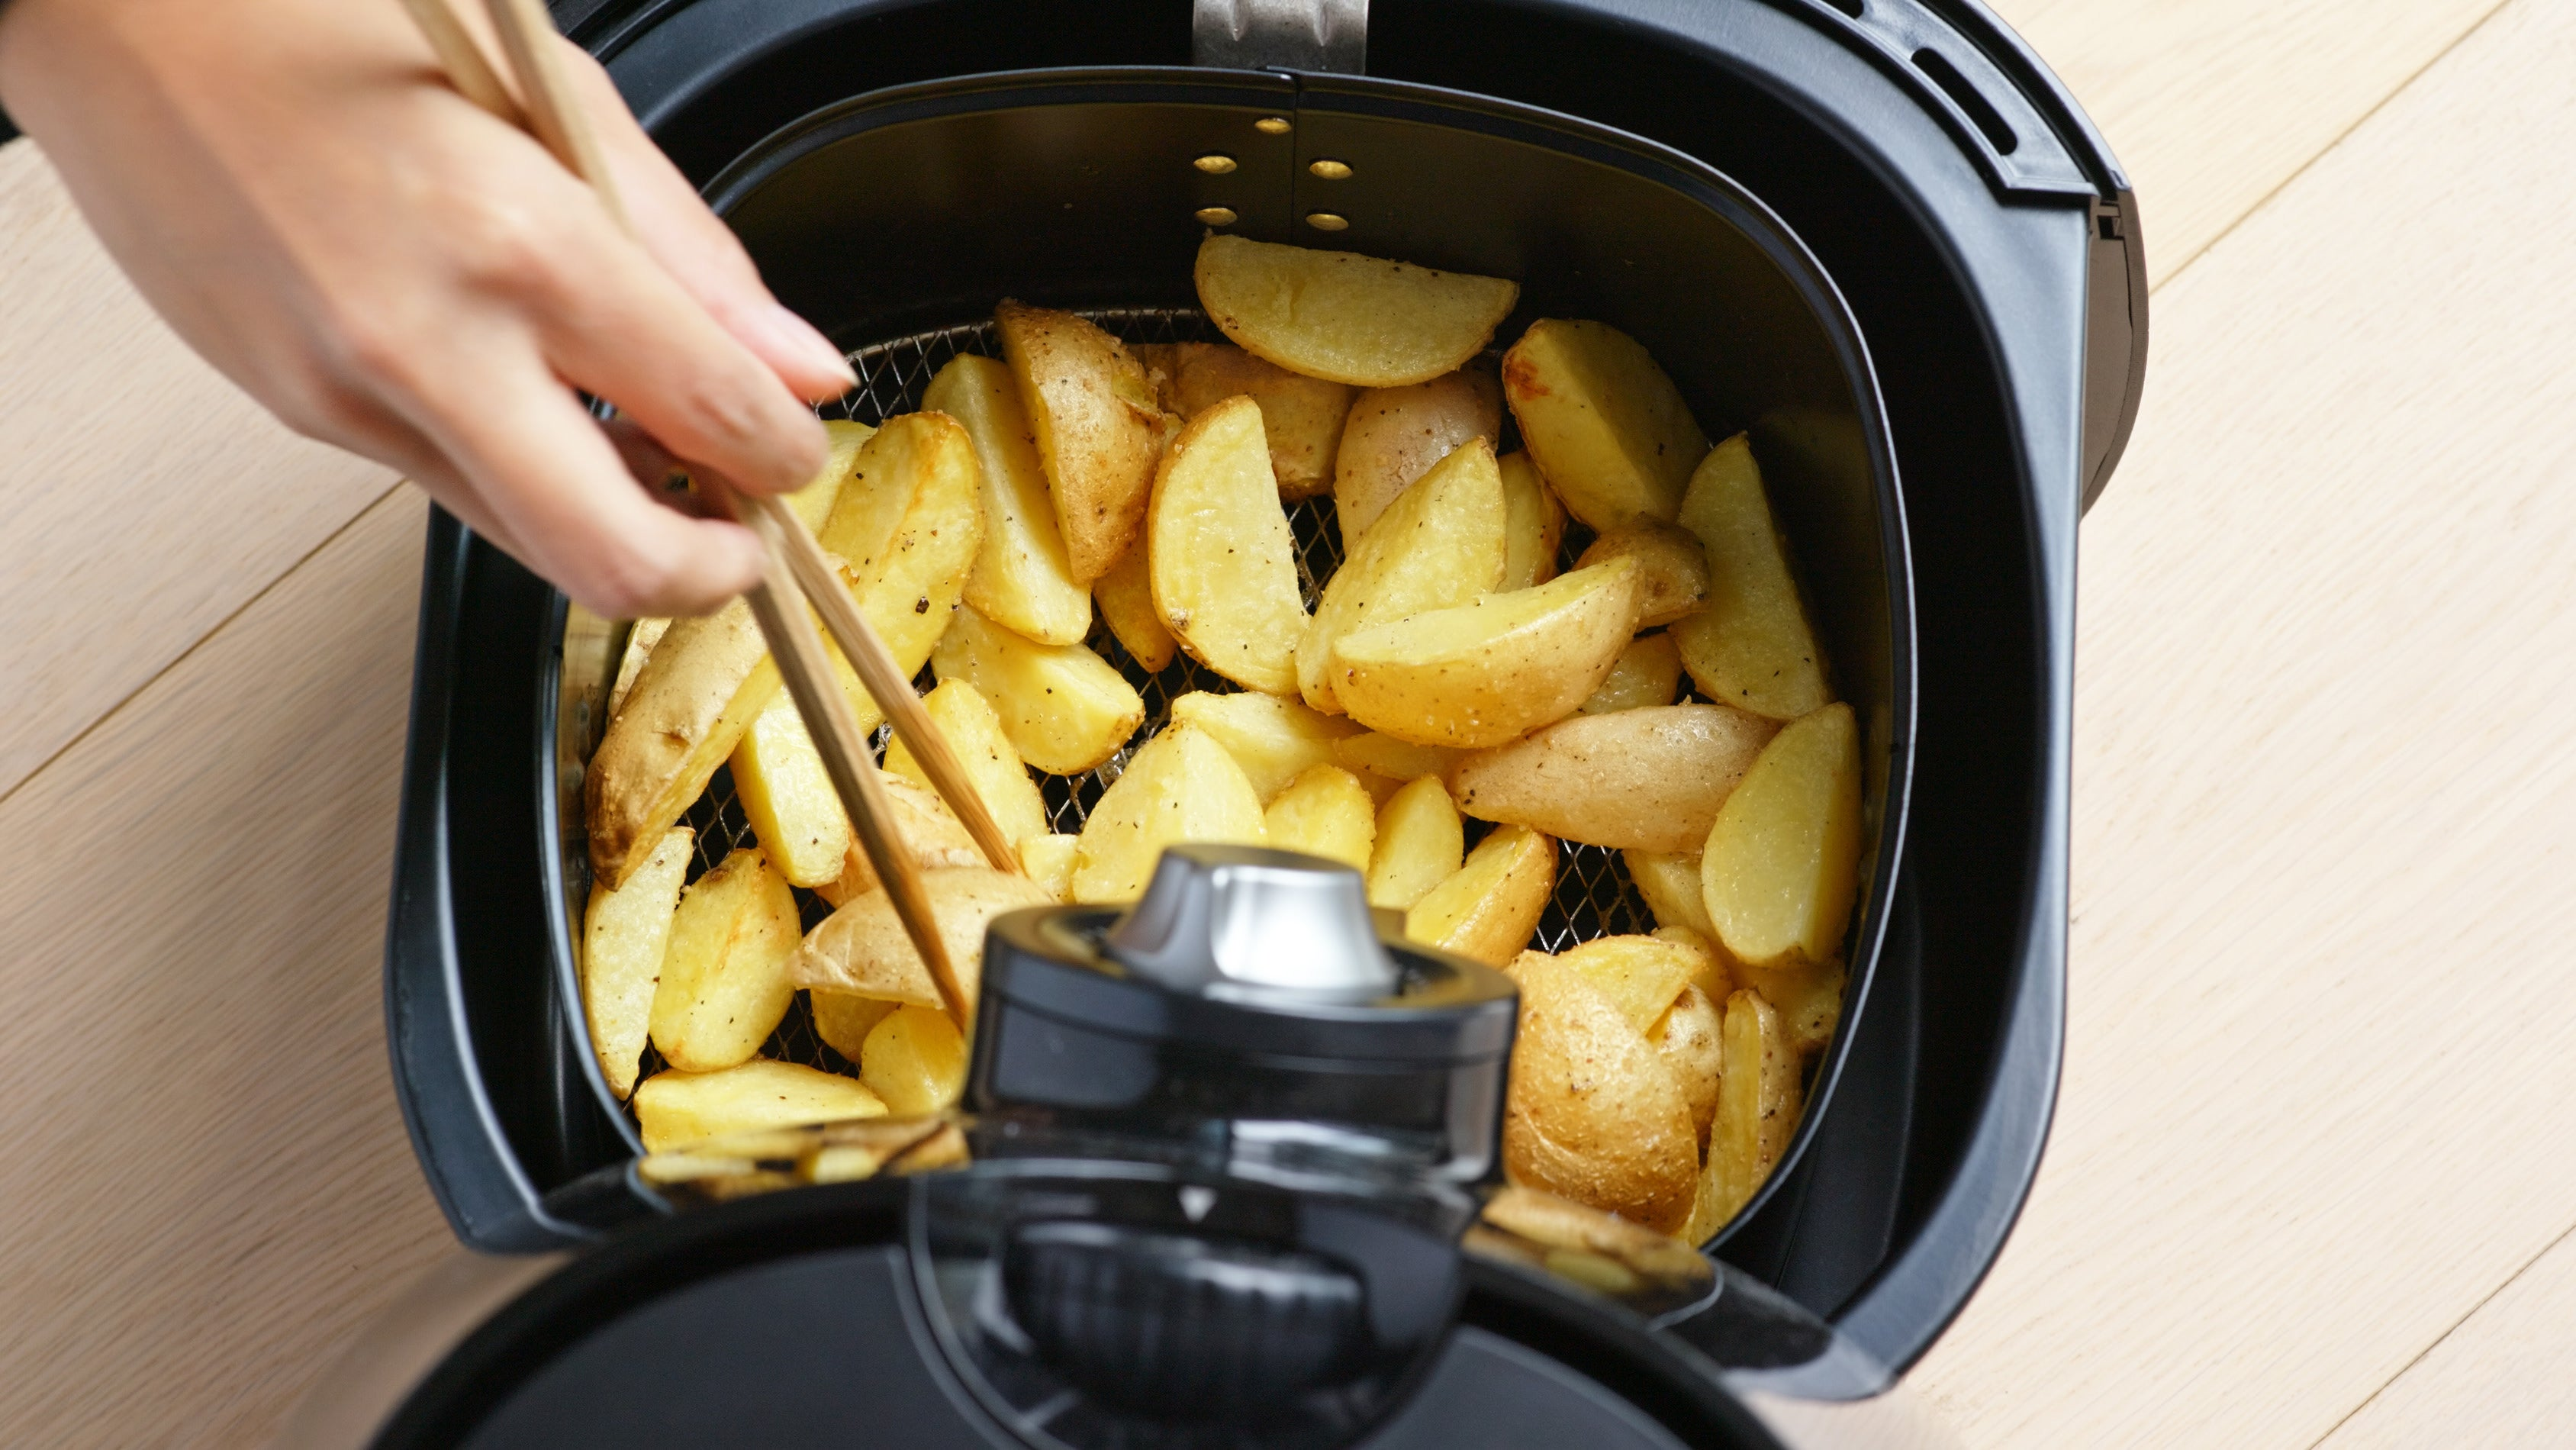 Use Your Air Fryer To Make Extra-Crunchy Potatoes